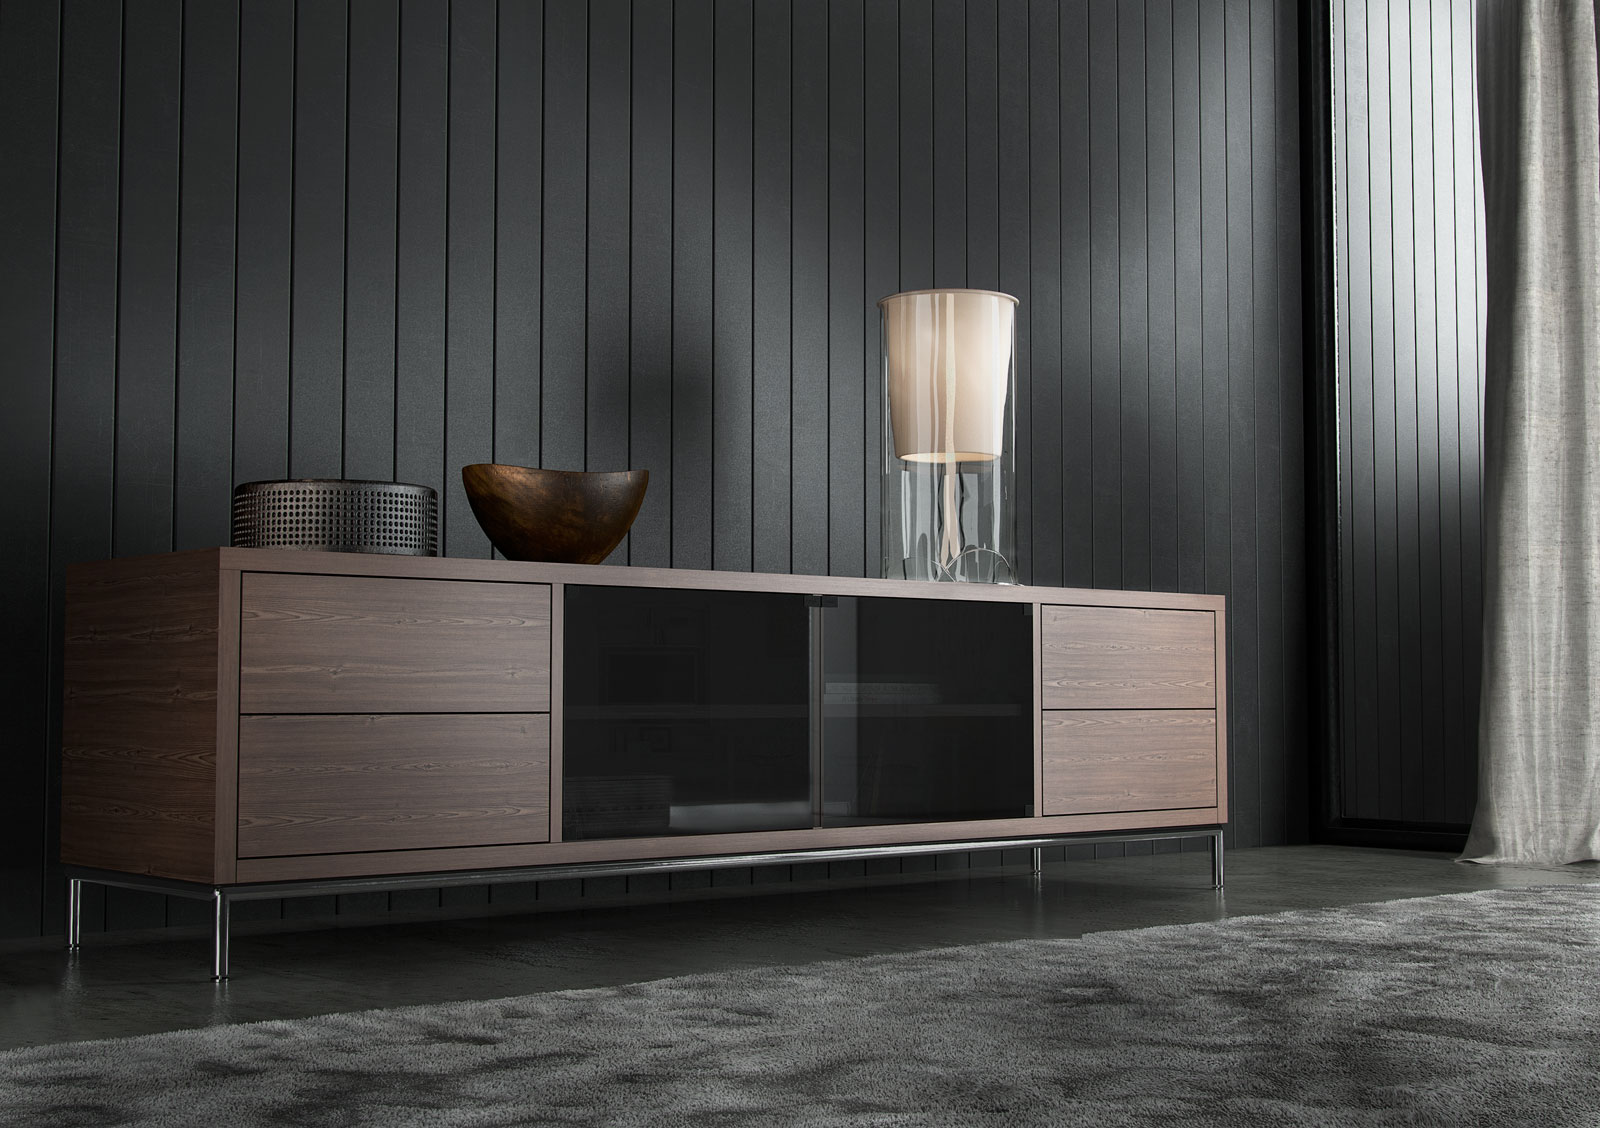 Kaza Modern Furniture